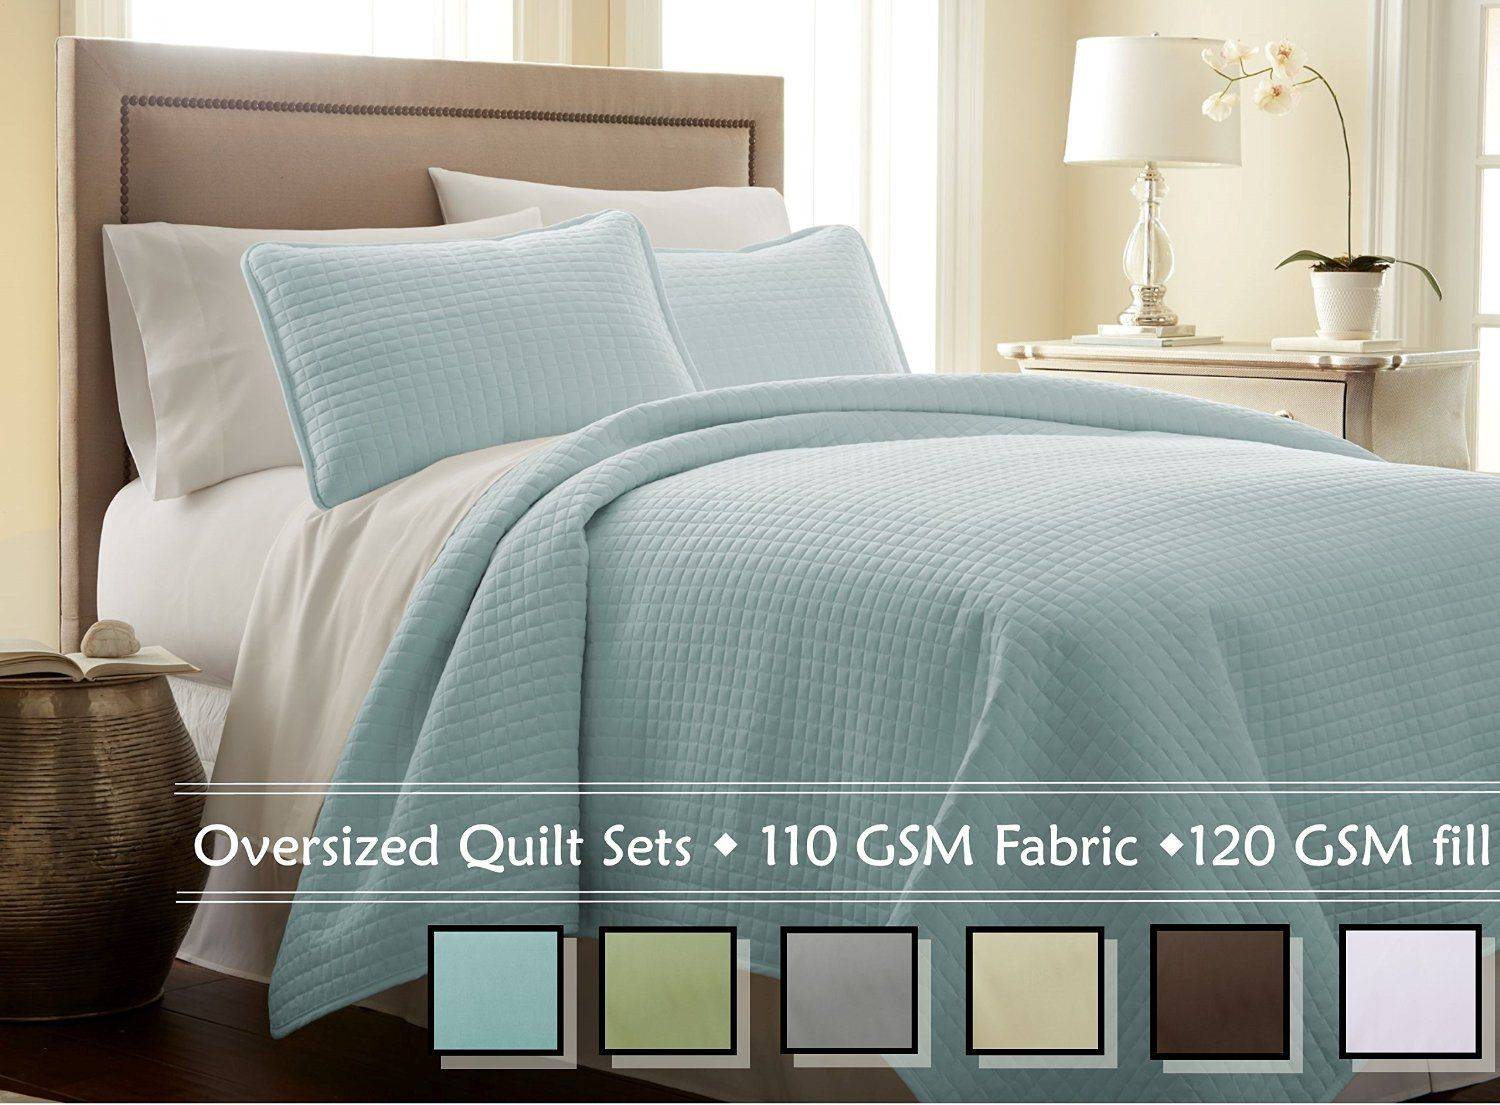 Amazon.com: Southshore Fine Linens 3 Piece Oversized Quilt Set - Bright White FULL / QUEEN: Home & Kitchen